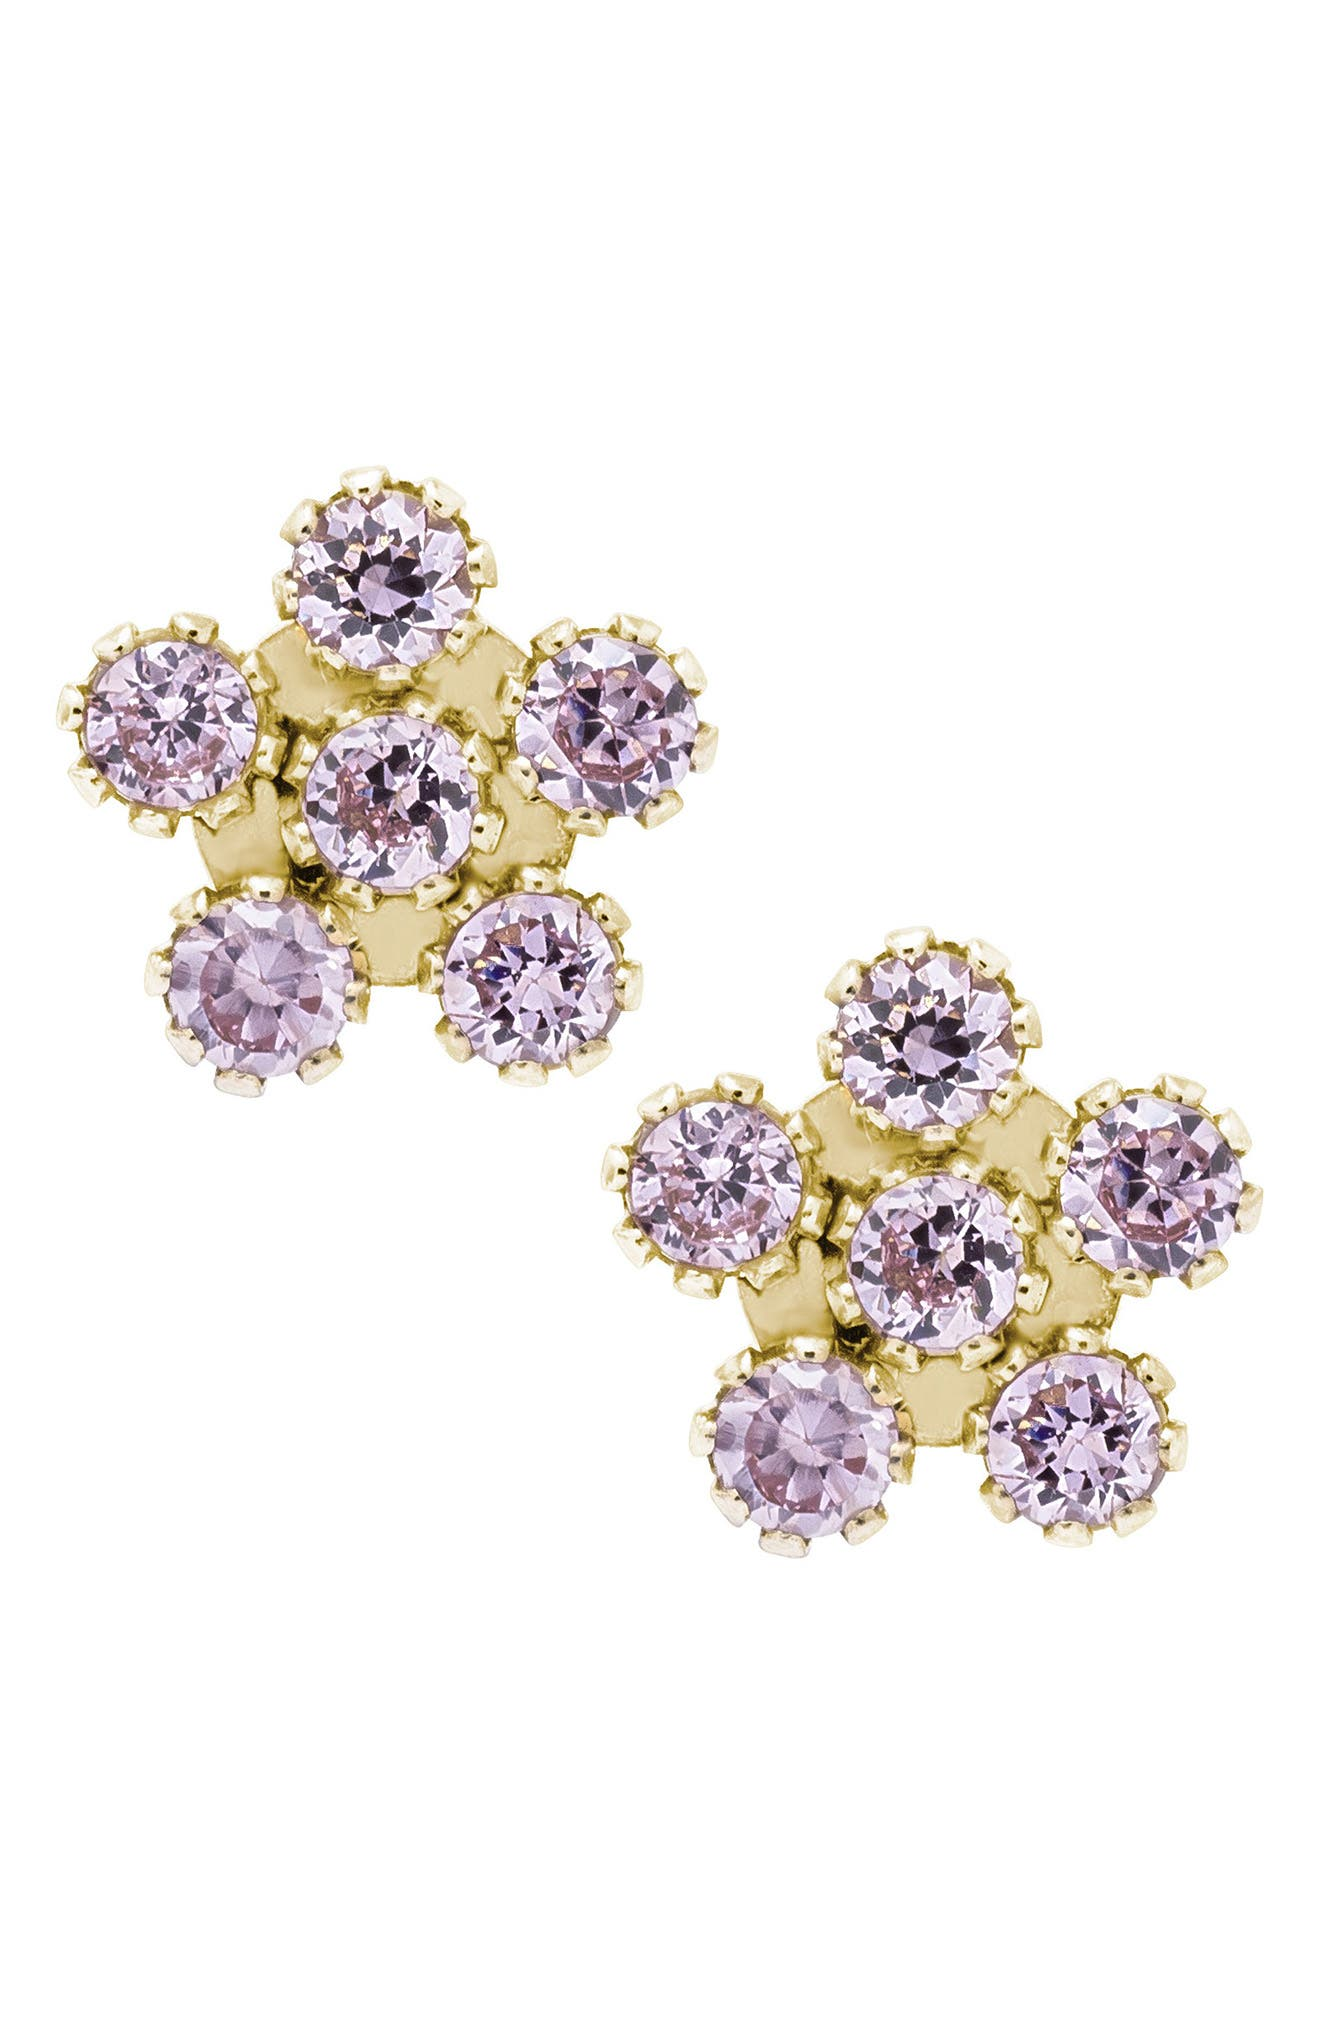 14k Gold & Cubic Zirconia Flower Earrings,                             Main thumbnail 1, color,                             PINK/ GOLD